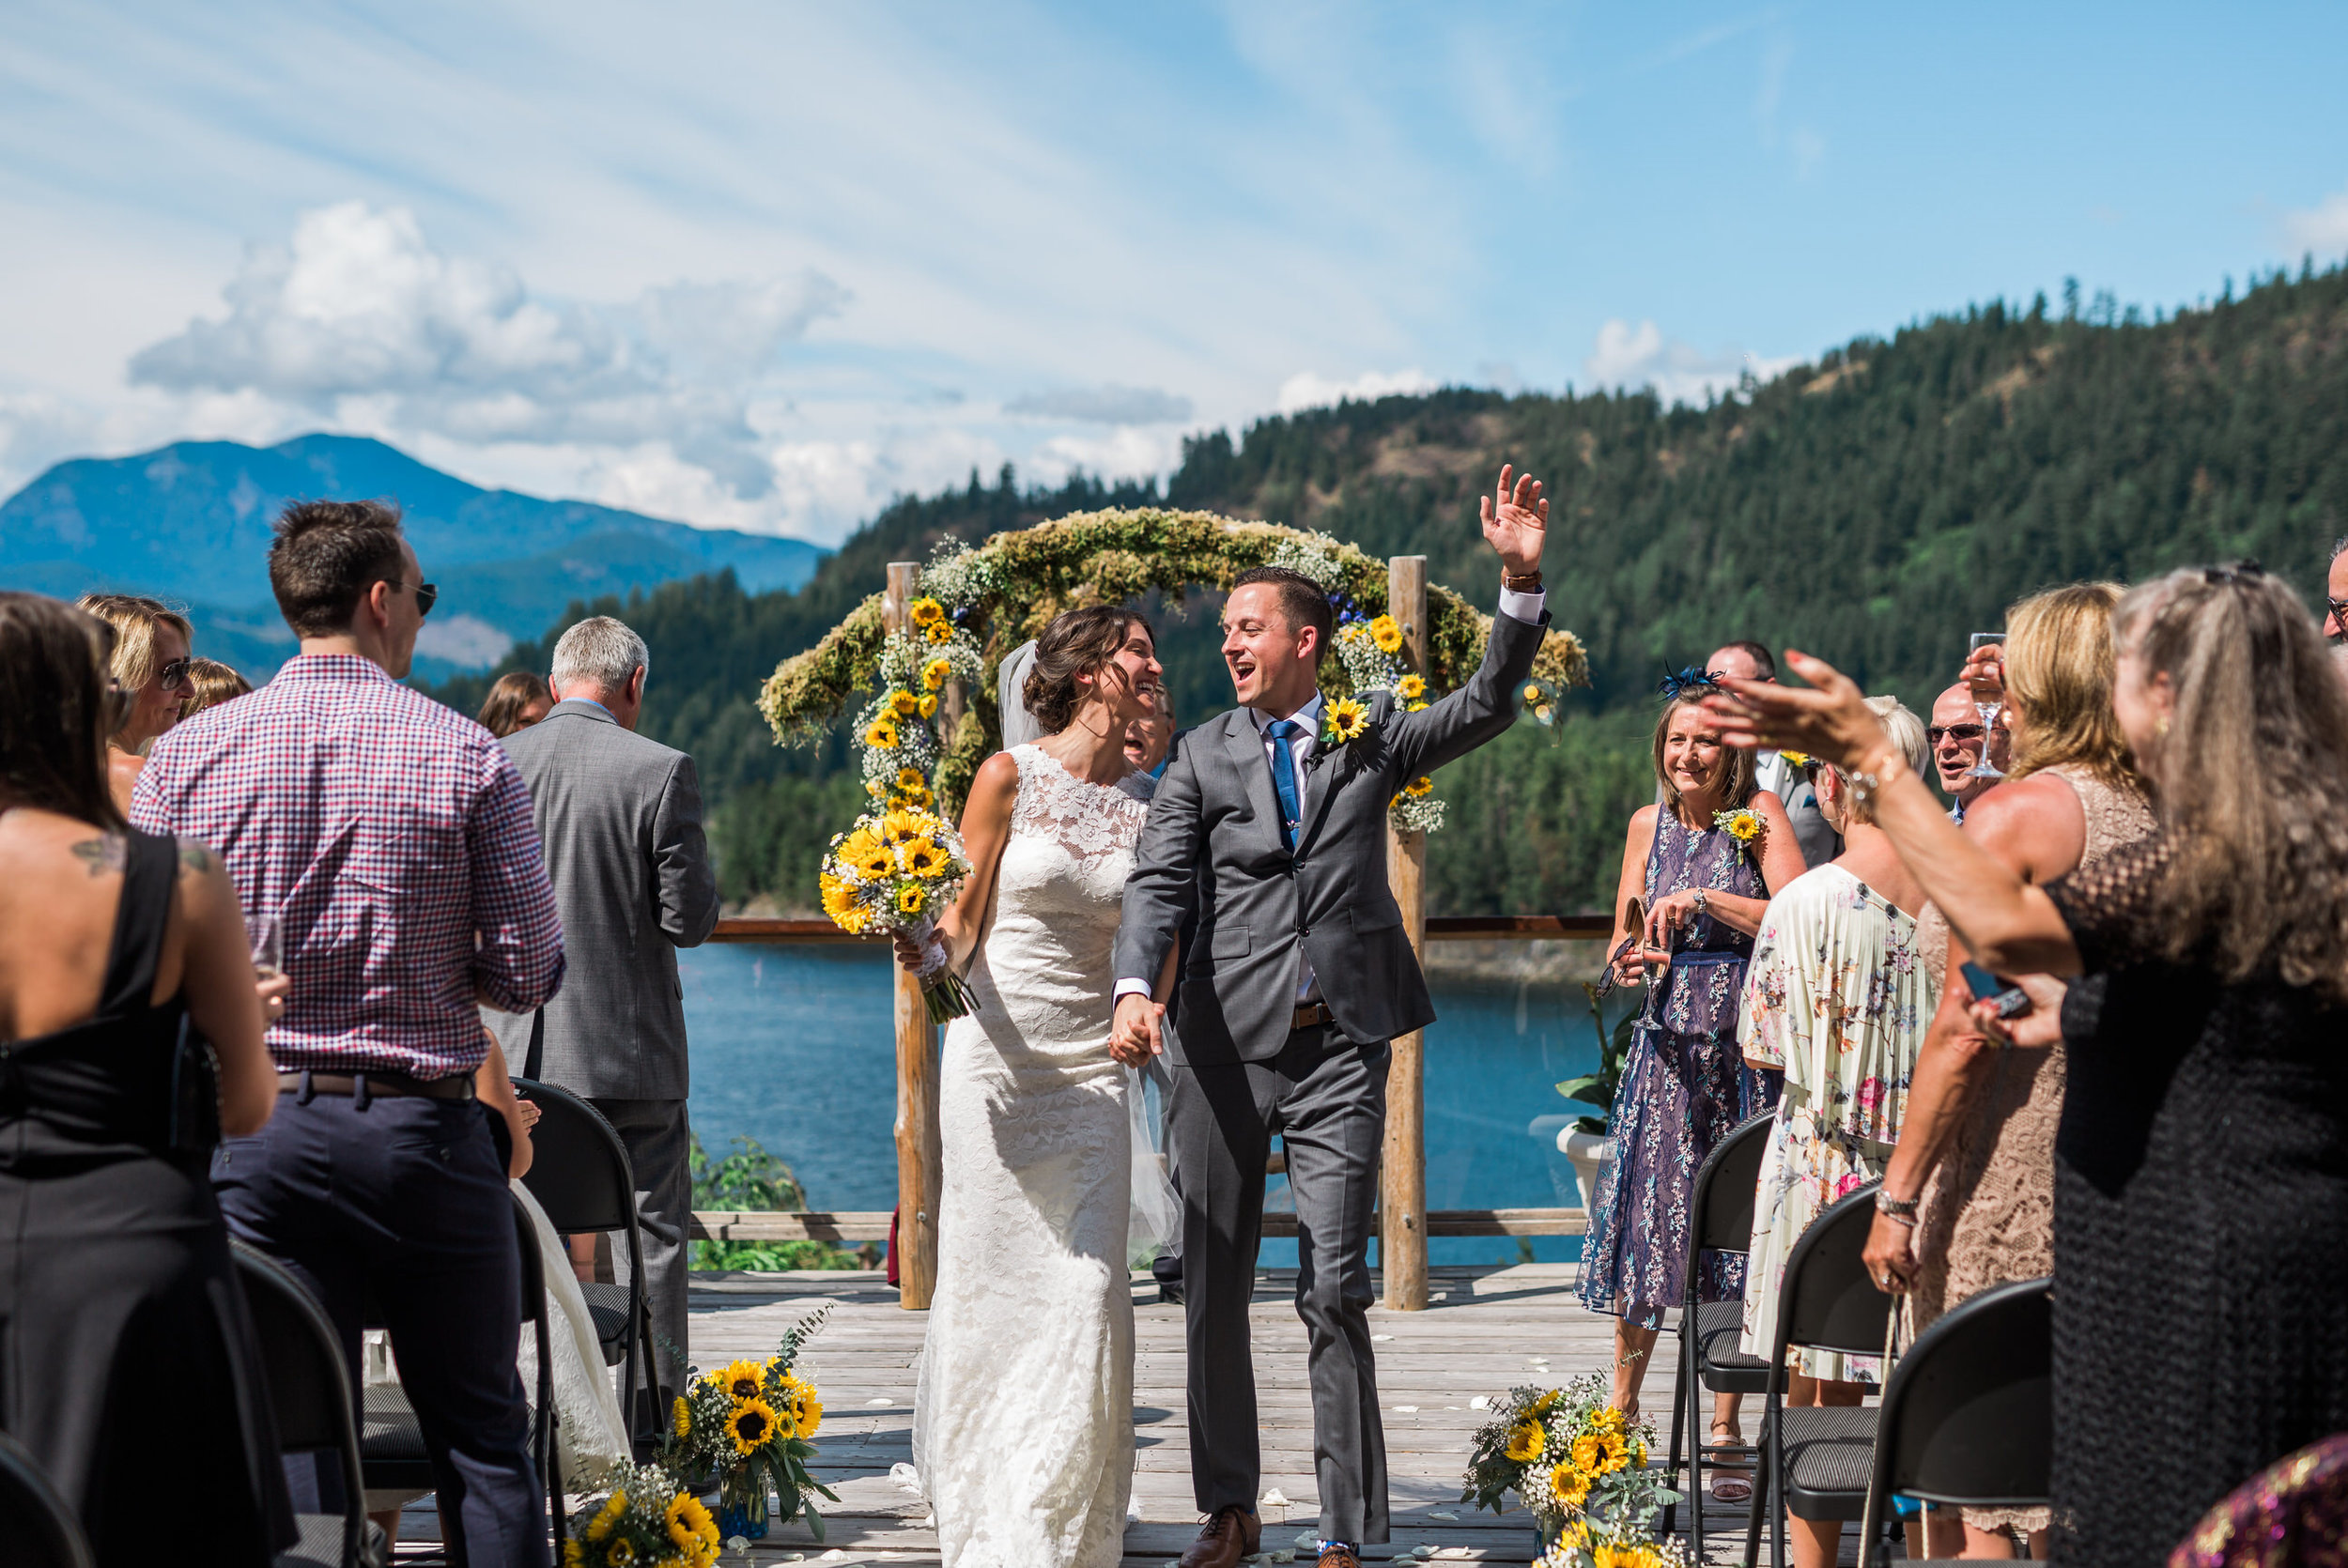 West Coast Wilderness Lodge Wedding Photos - Vancouver Wedding Photographer & Videographer - Sunshine Coast Wedding Photos - Sunshine Coast Wedding Photographer - Jennifer Picard Photography - IMG_8353.jpg